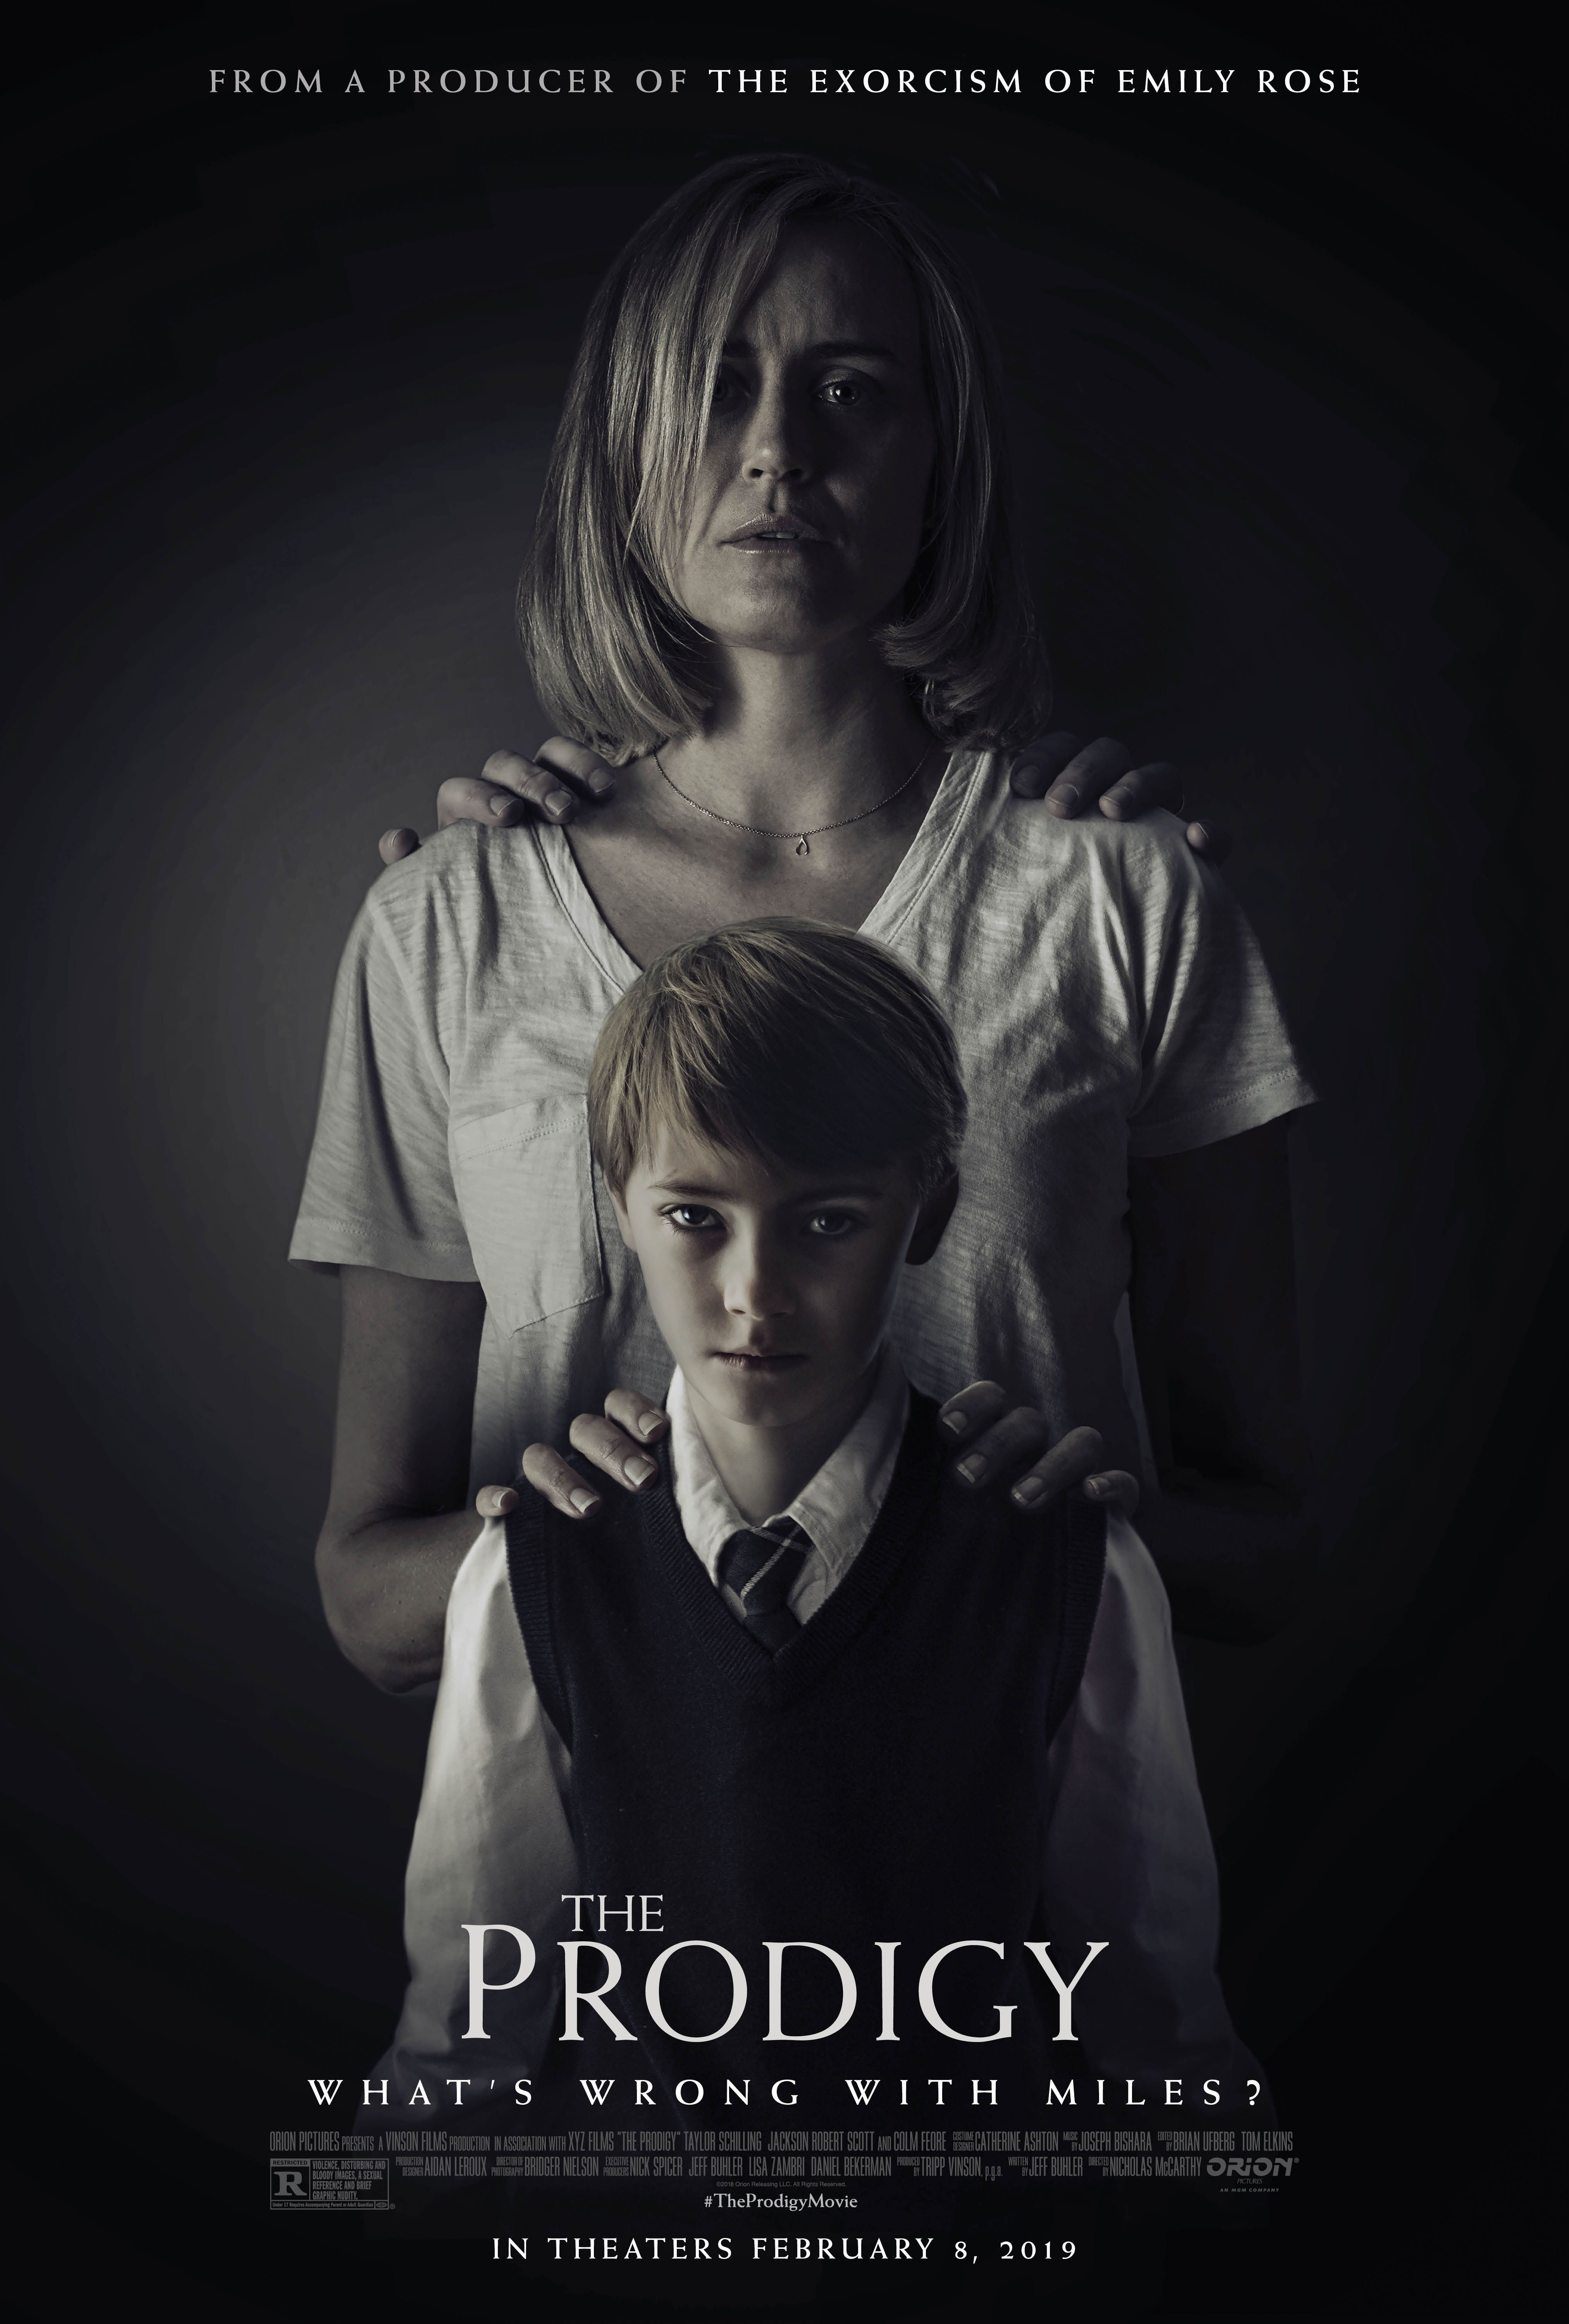 The Prodigy In Theaters February 8 2019 Full Movies Online